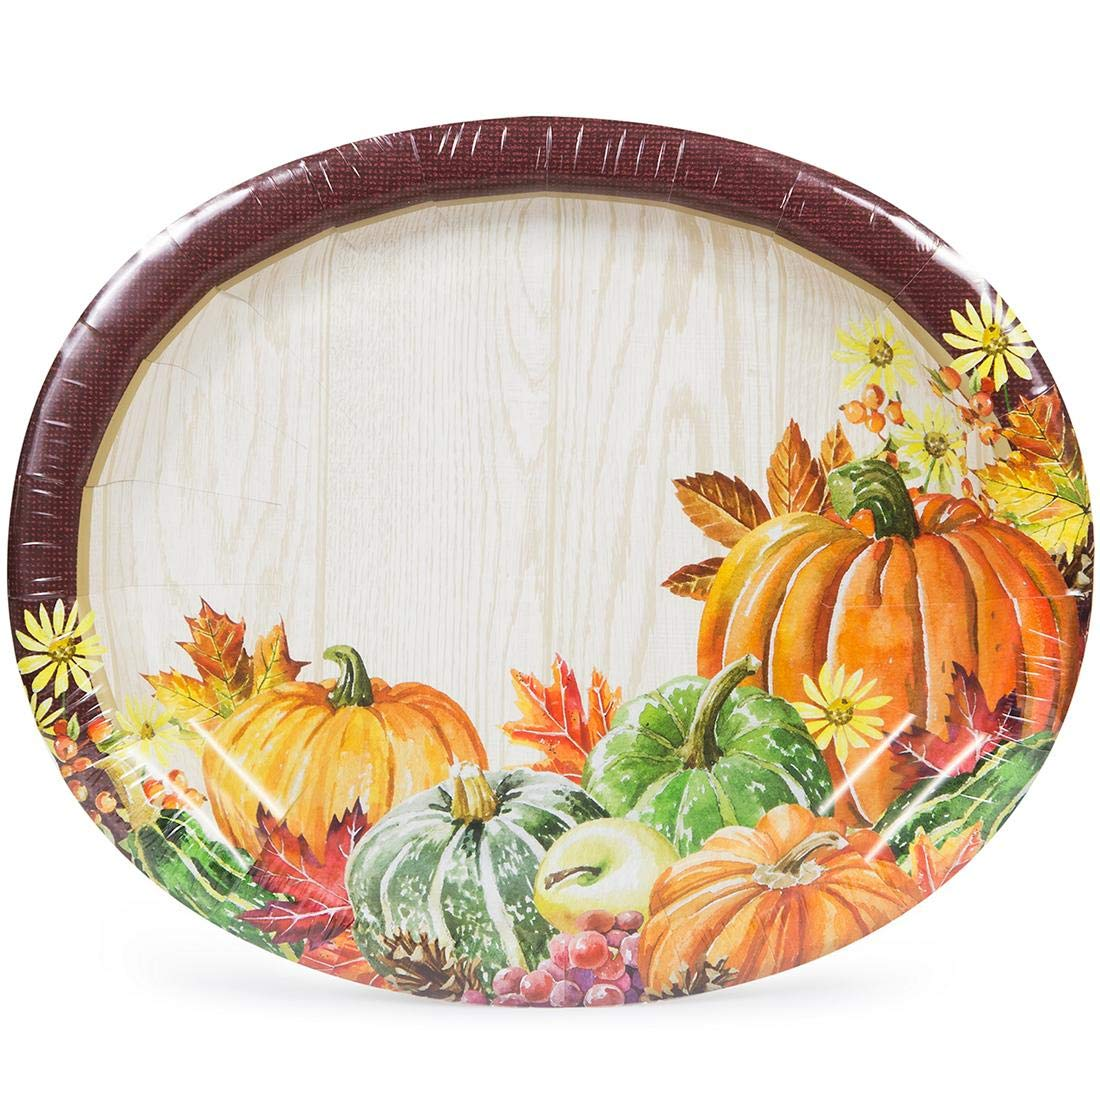 Large Thanksgiving Oval Paper Plates Heartland Fall Harvest 35-Ct Package by ArtStyle